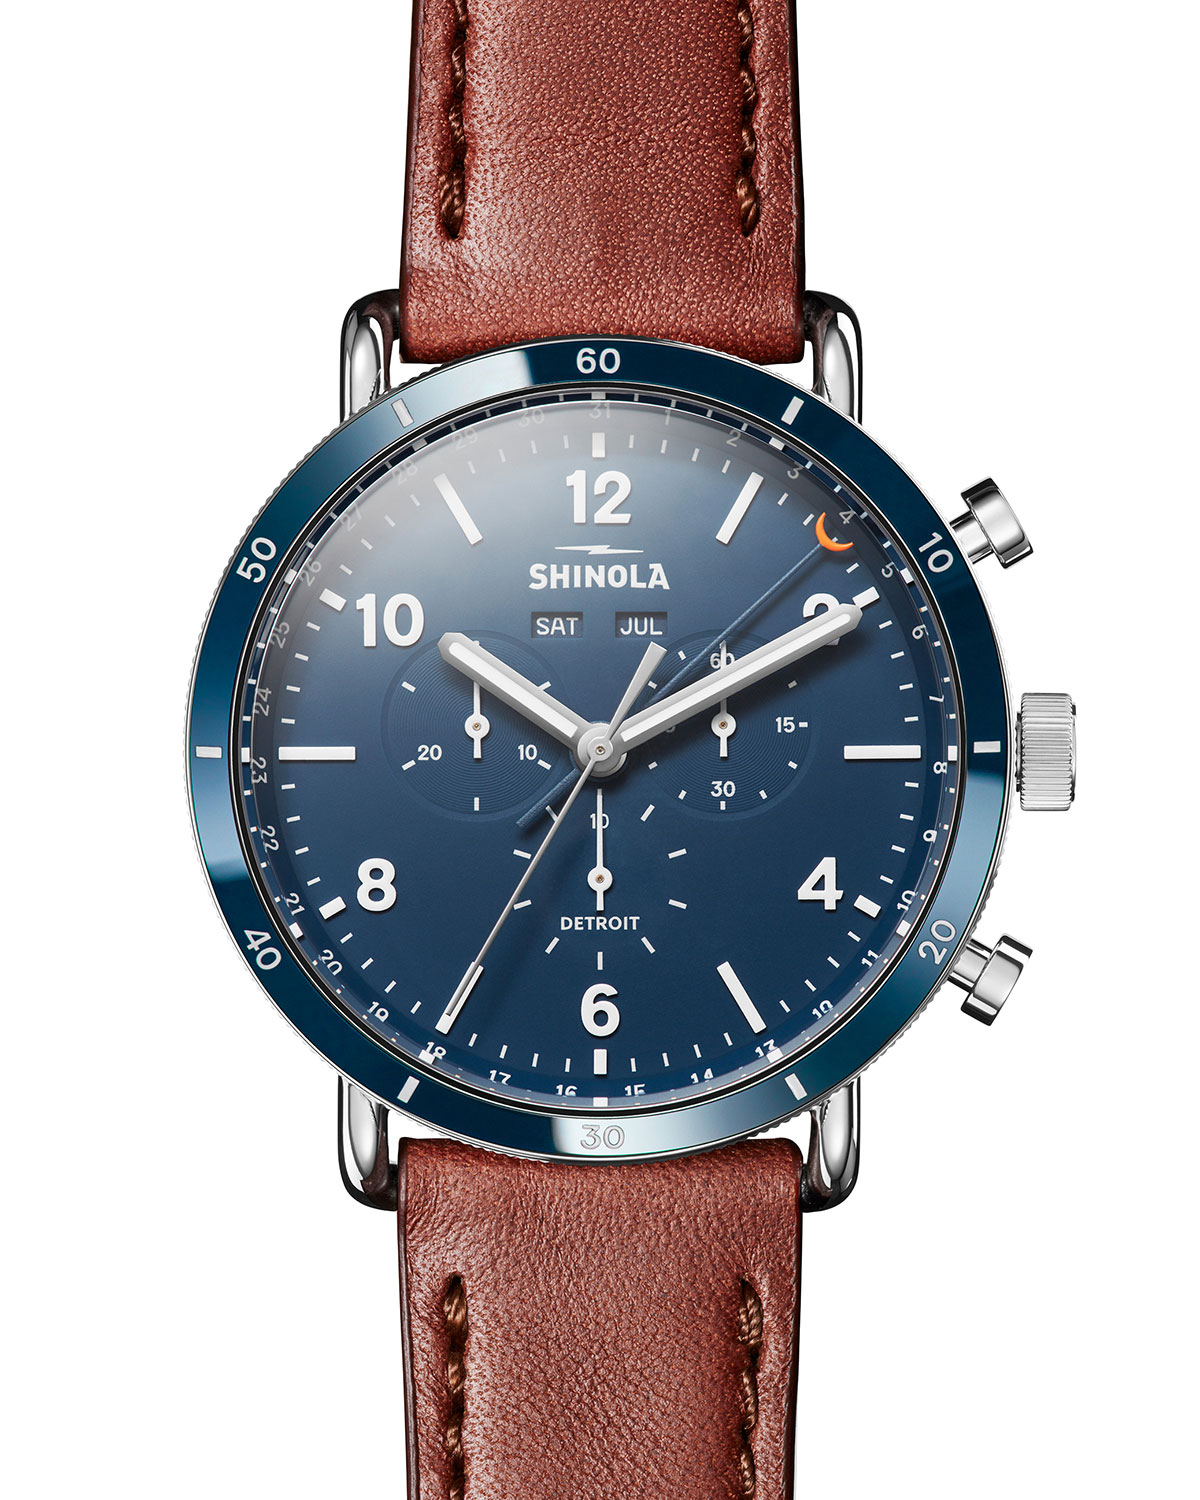 Men's 45mm Canfield Chronograph Watch w/ Leather Strap